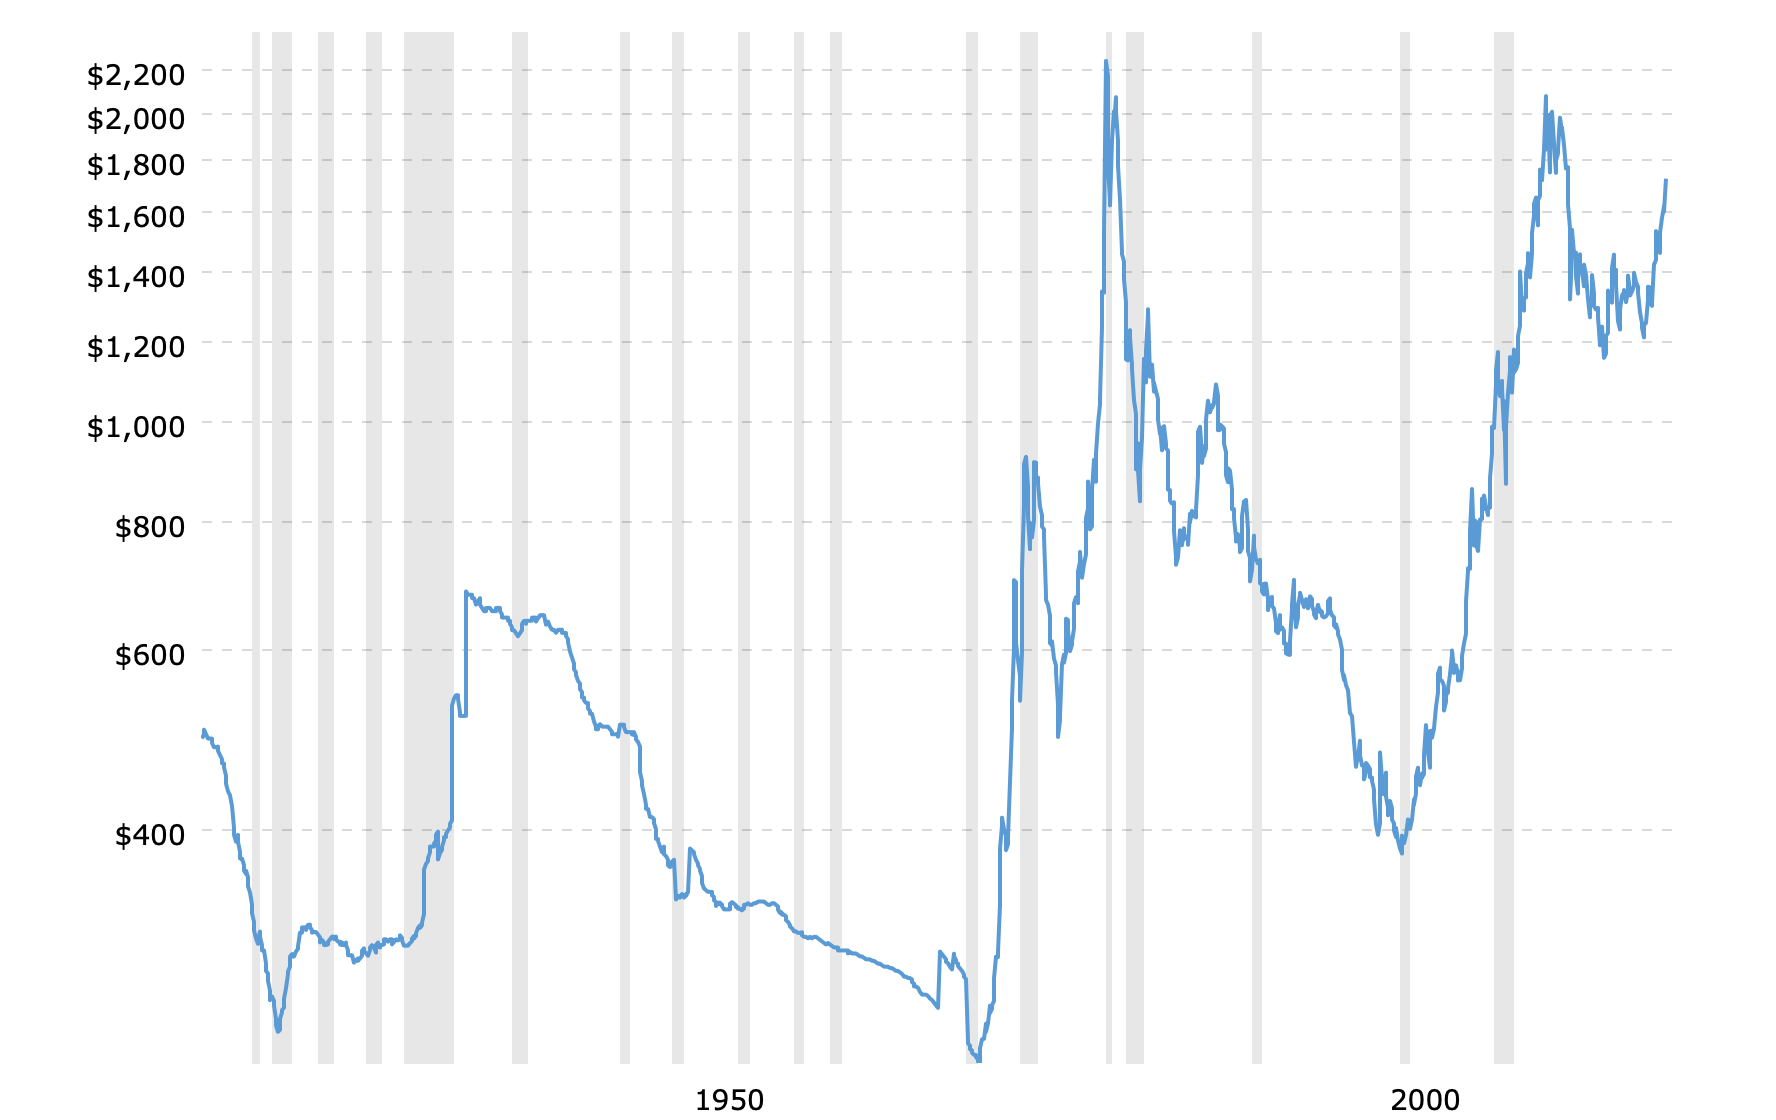 historical-gold-prices-100-year-chart-2020-04-28-macrotrends